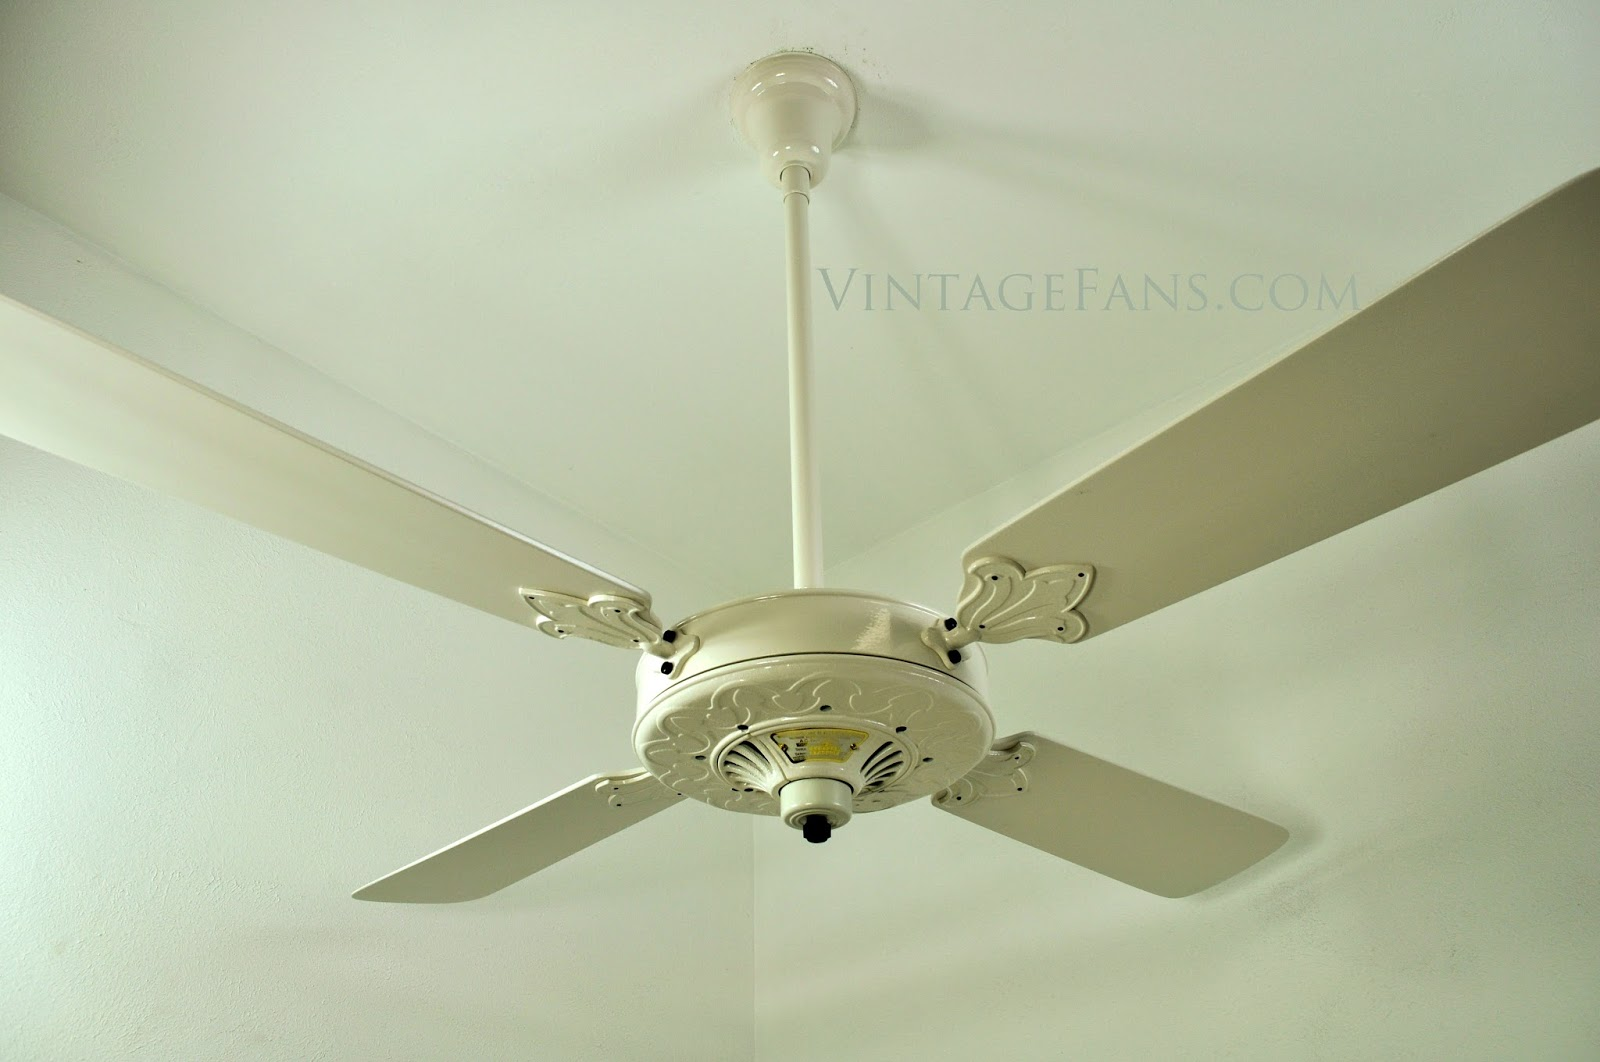 Vintage fans blog vintage fans llc gatsby style 1920s westinghouse ceiling fan featured at lucky brands pasadena ca store mozeypictures Gallery